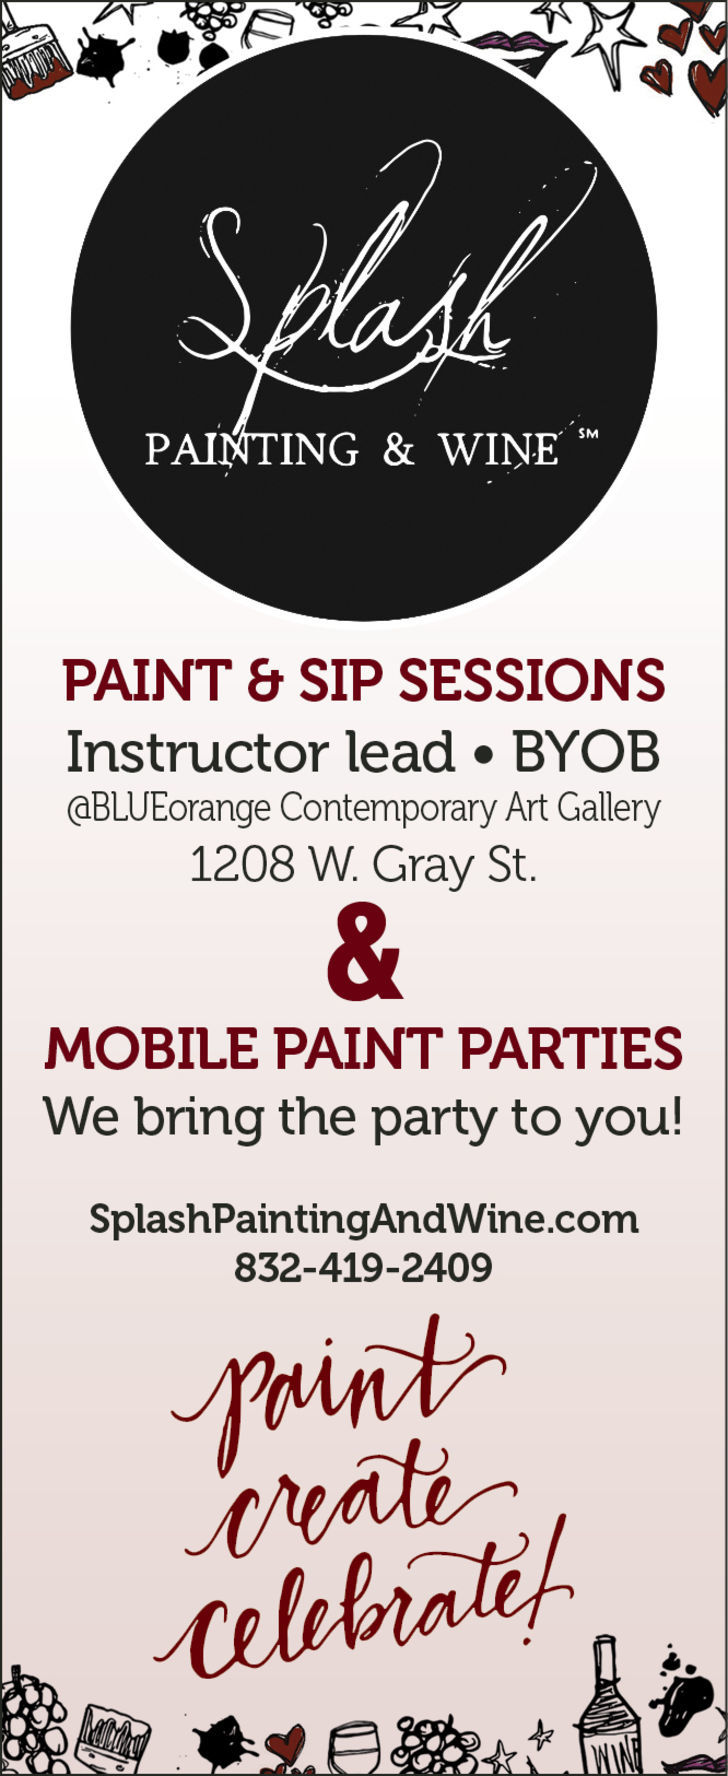 Splash Painting and Wine